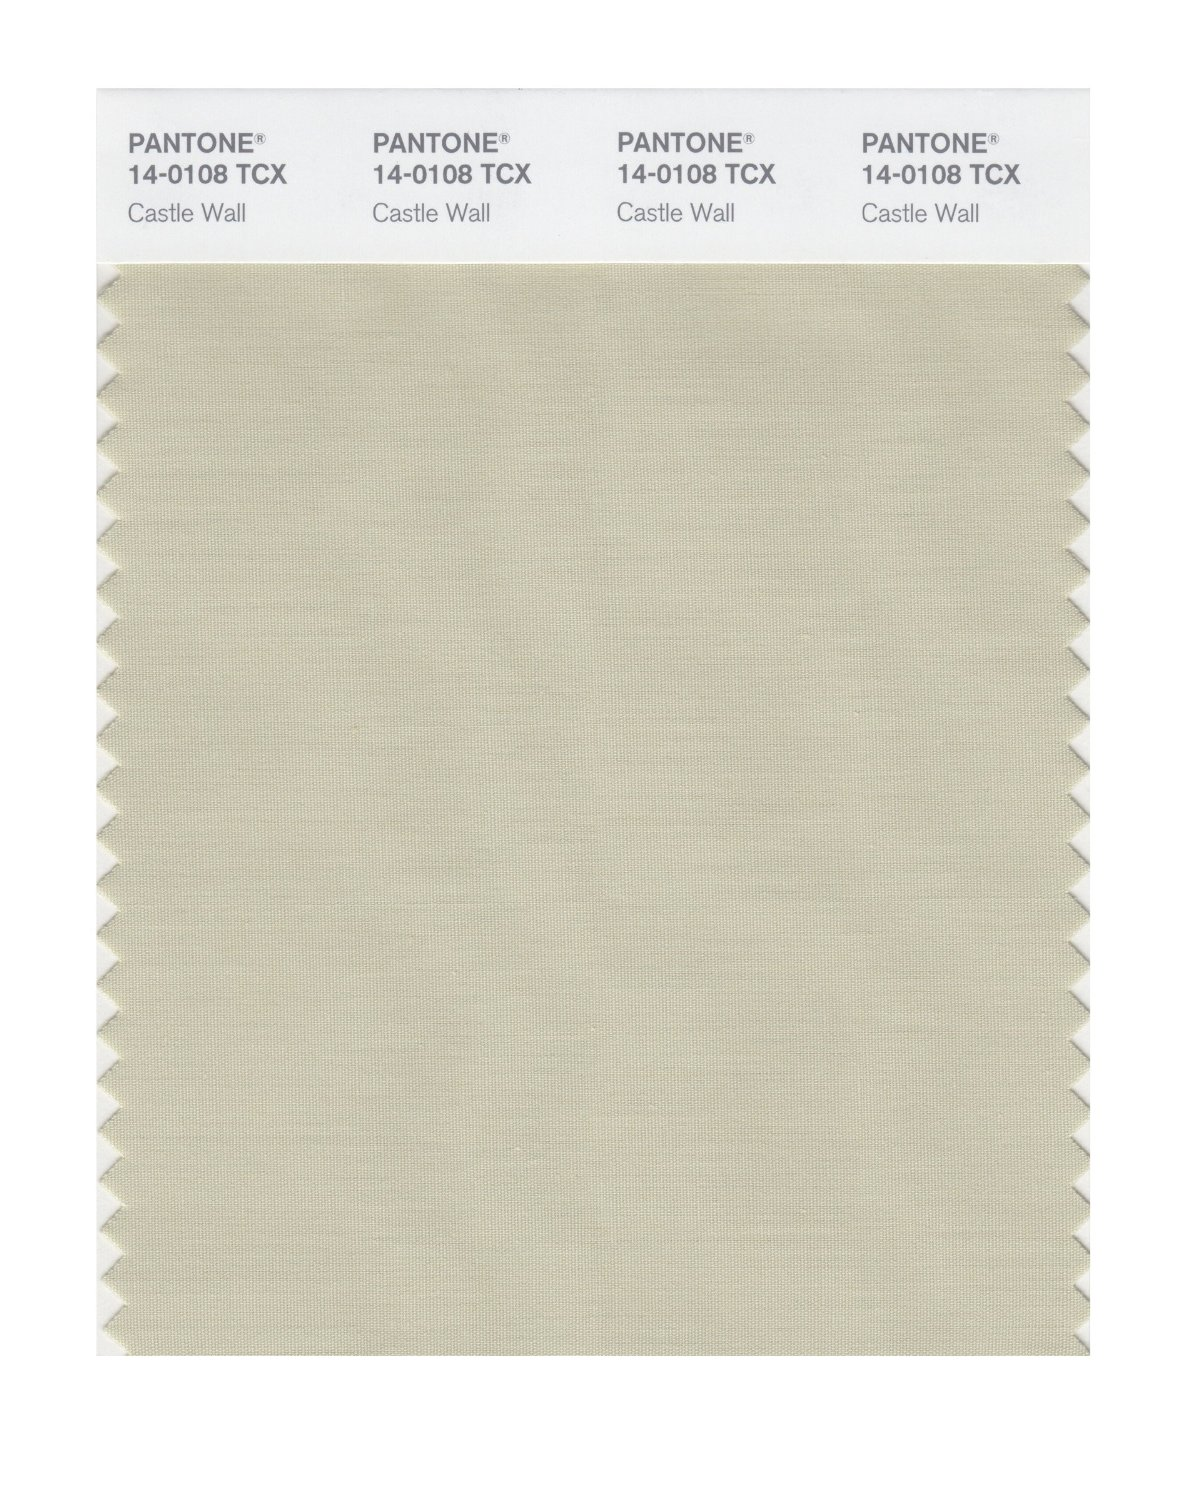 Pantone Smart Swatch 14-0108 Castle Wall